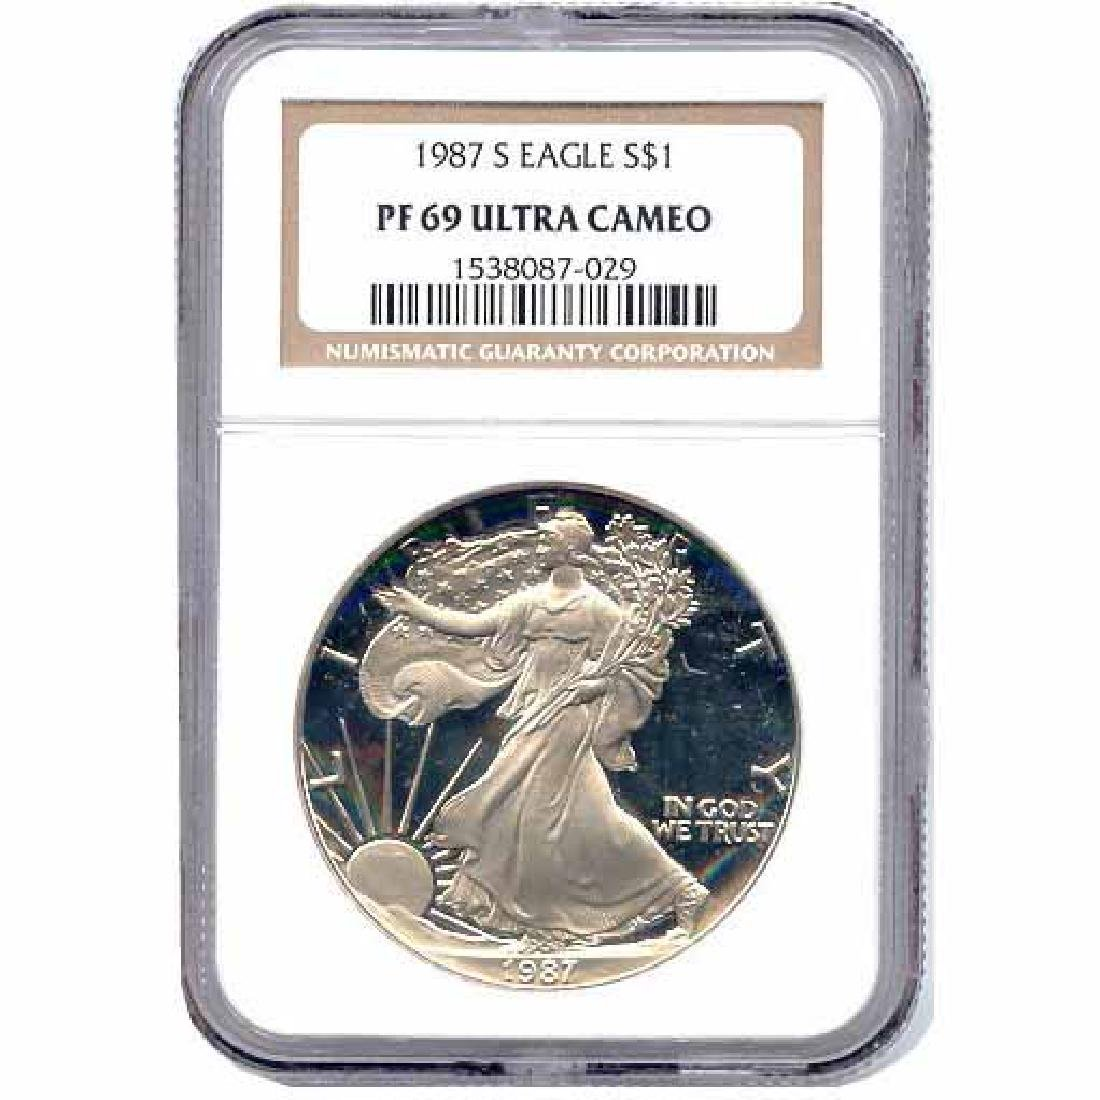 Certified Proof Silver Eagle PF69 1987